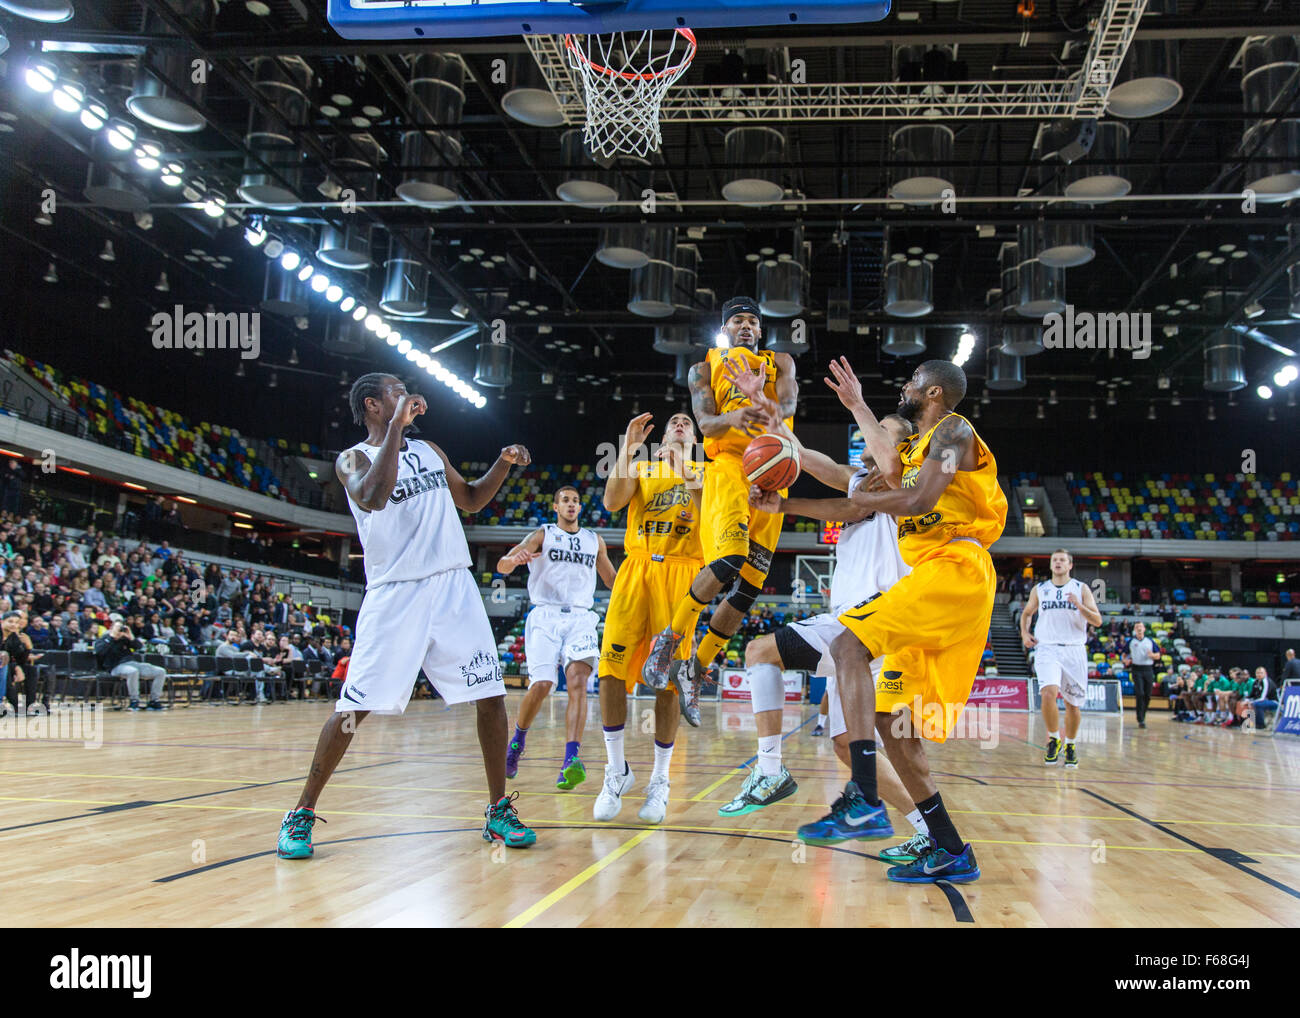 Olympic Park, London, UK, 13th November, 2015. Lions' no 11 Nick Lewis at the basket. Lions win 85-60. copyright Stock Photo